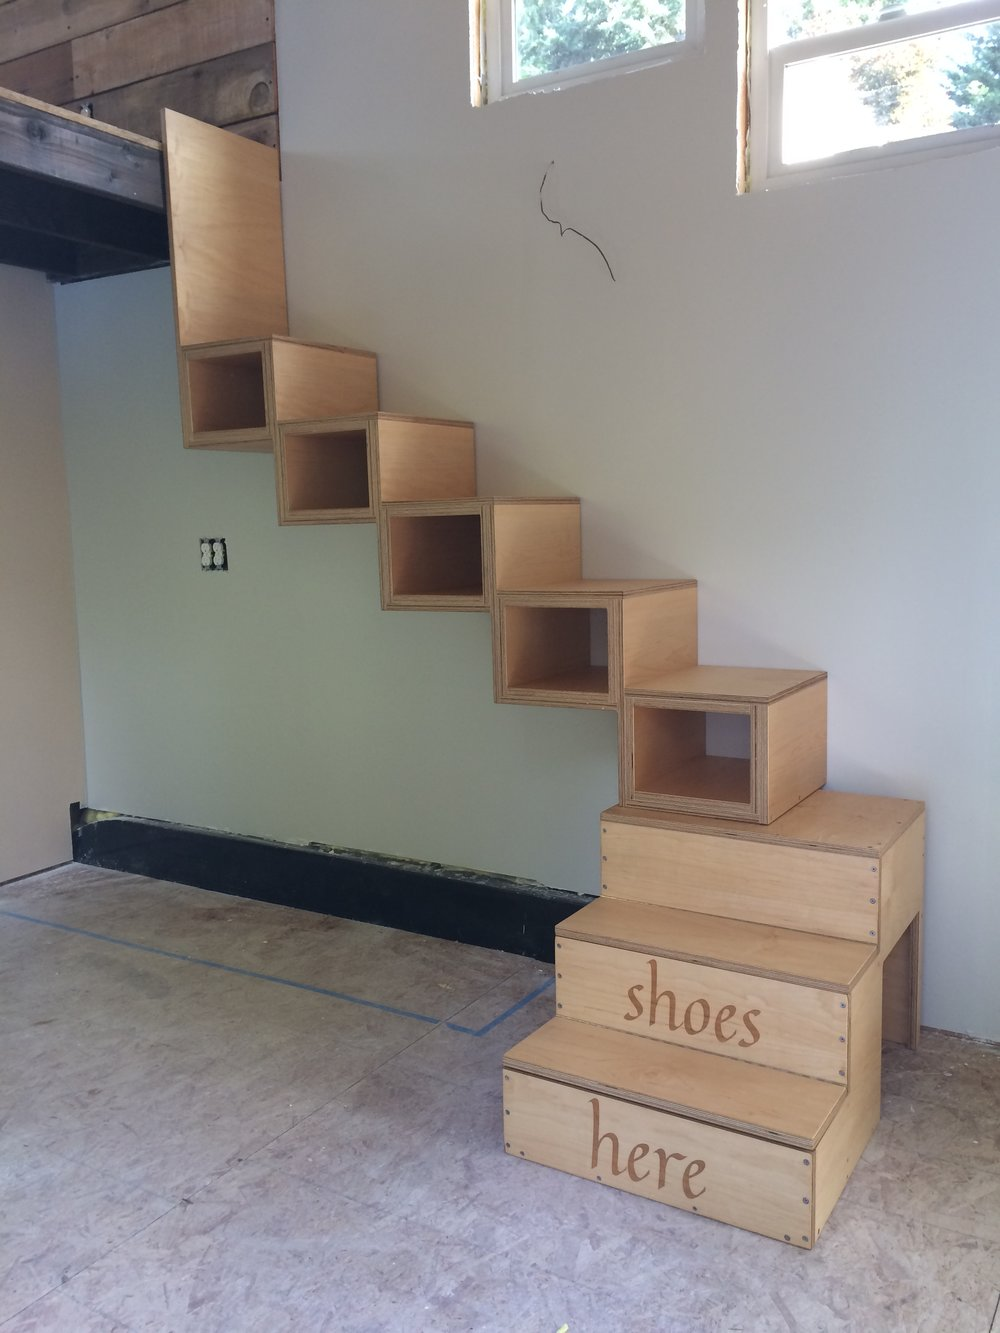 Tiny house stairs - front view.